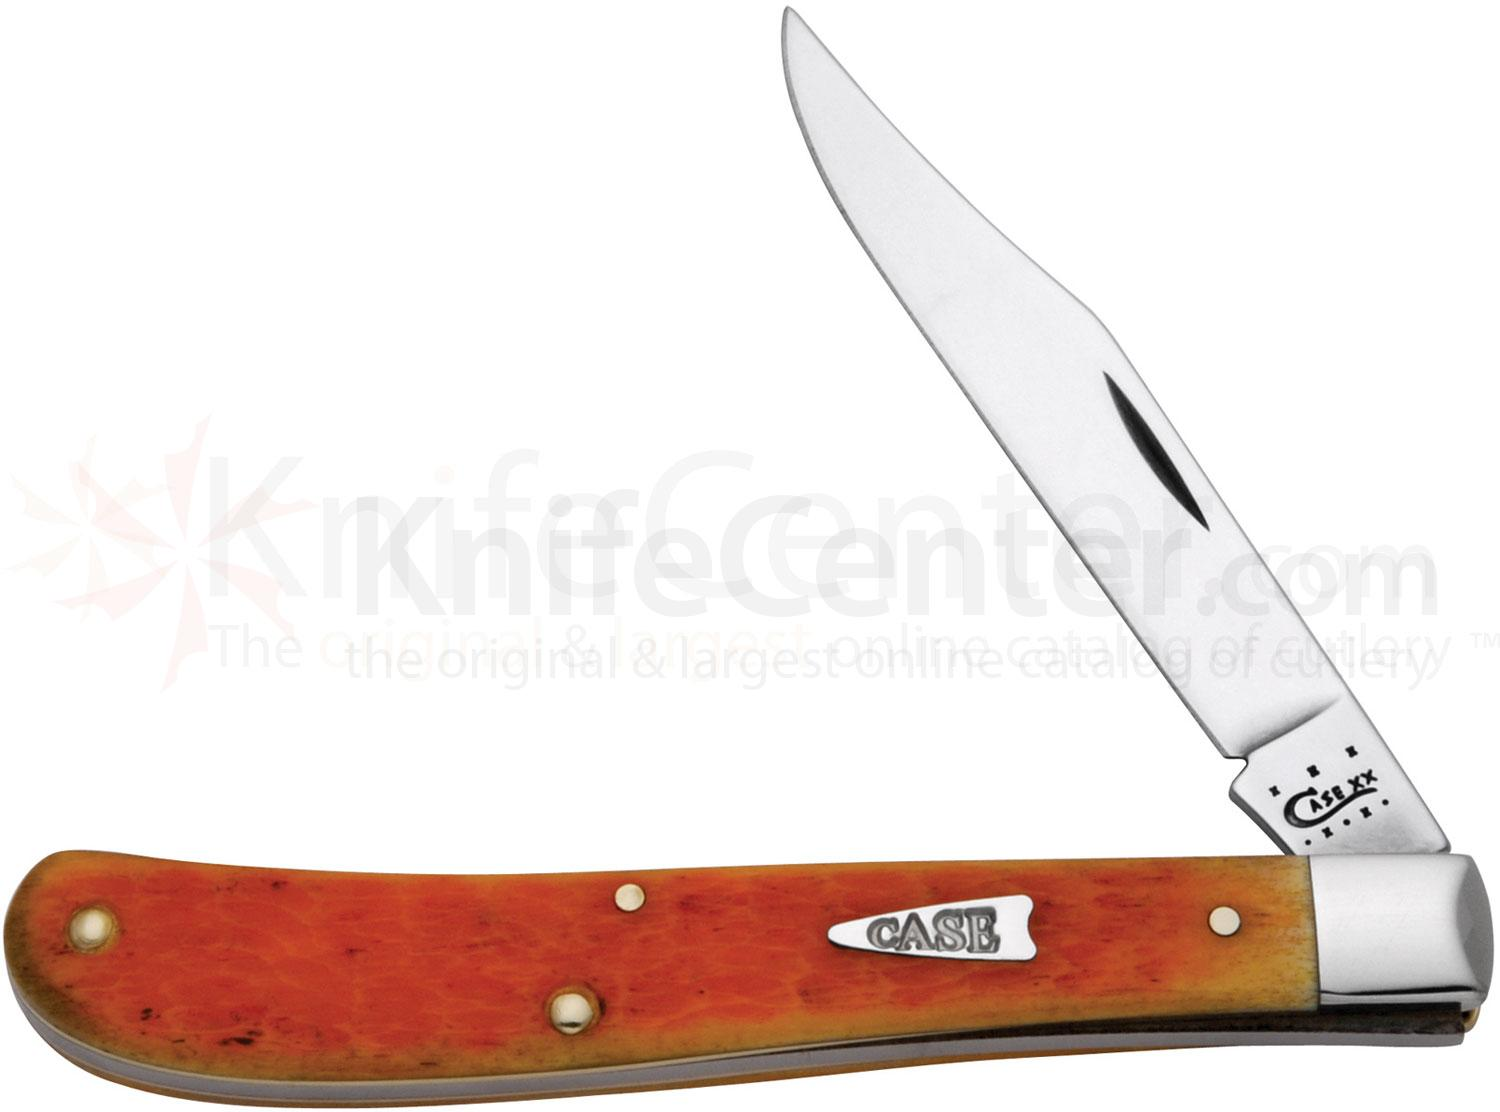 Case Orange Peel Bone Slimline Trapper 4-1/8 inch Closed (61048 SS)